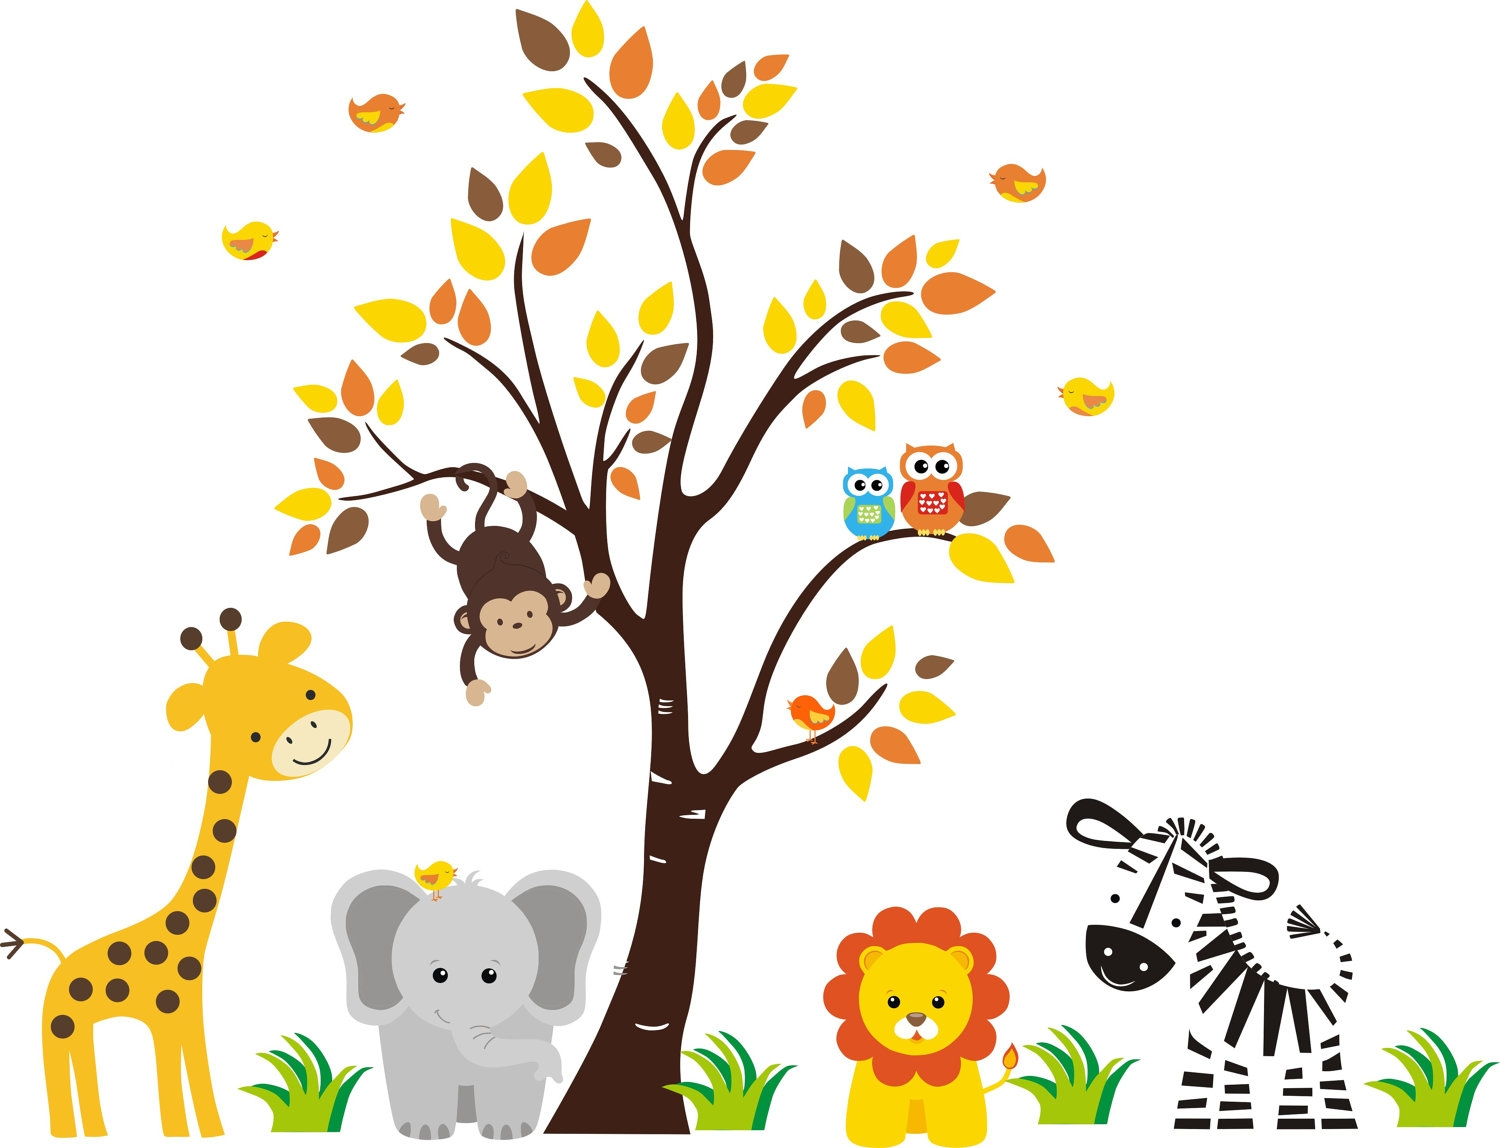 Cartoon baby animal clipart image library stock Free Baby Animals Cliparts, Download Free Clip Art, Free Clip Art on ... image library stock